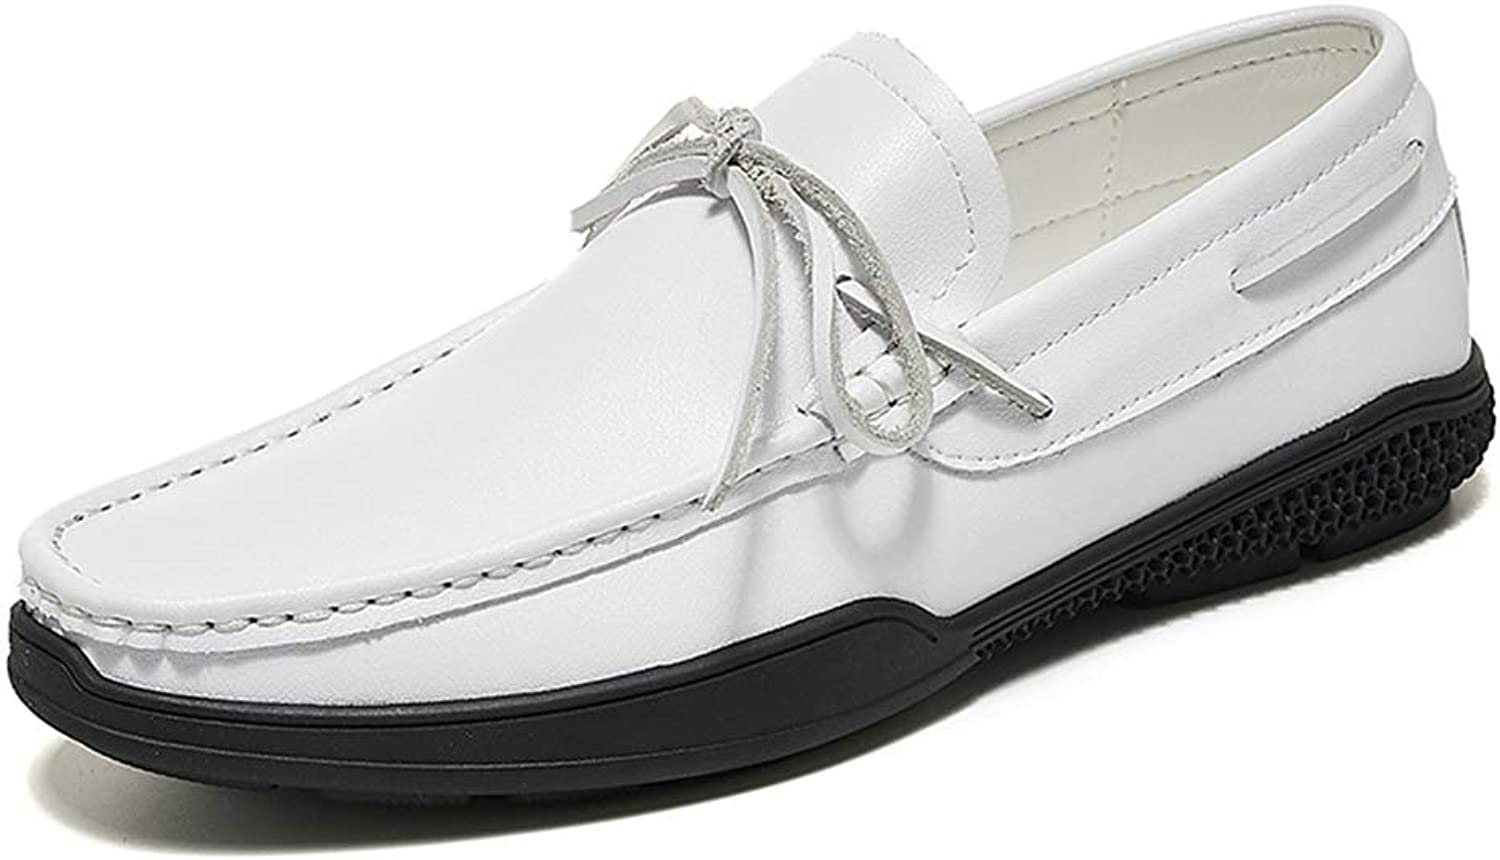 MUMUWU Soft Loafer for Men Boat Moccasins Slip On Style Leather Delicate Butterfly Lace Causal Breathable (color   White, Size   8.5 D(M) US)